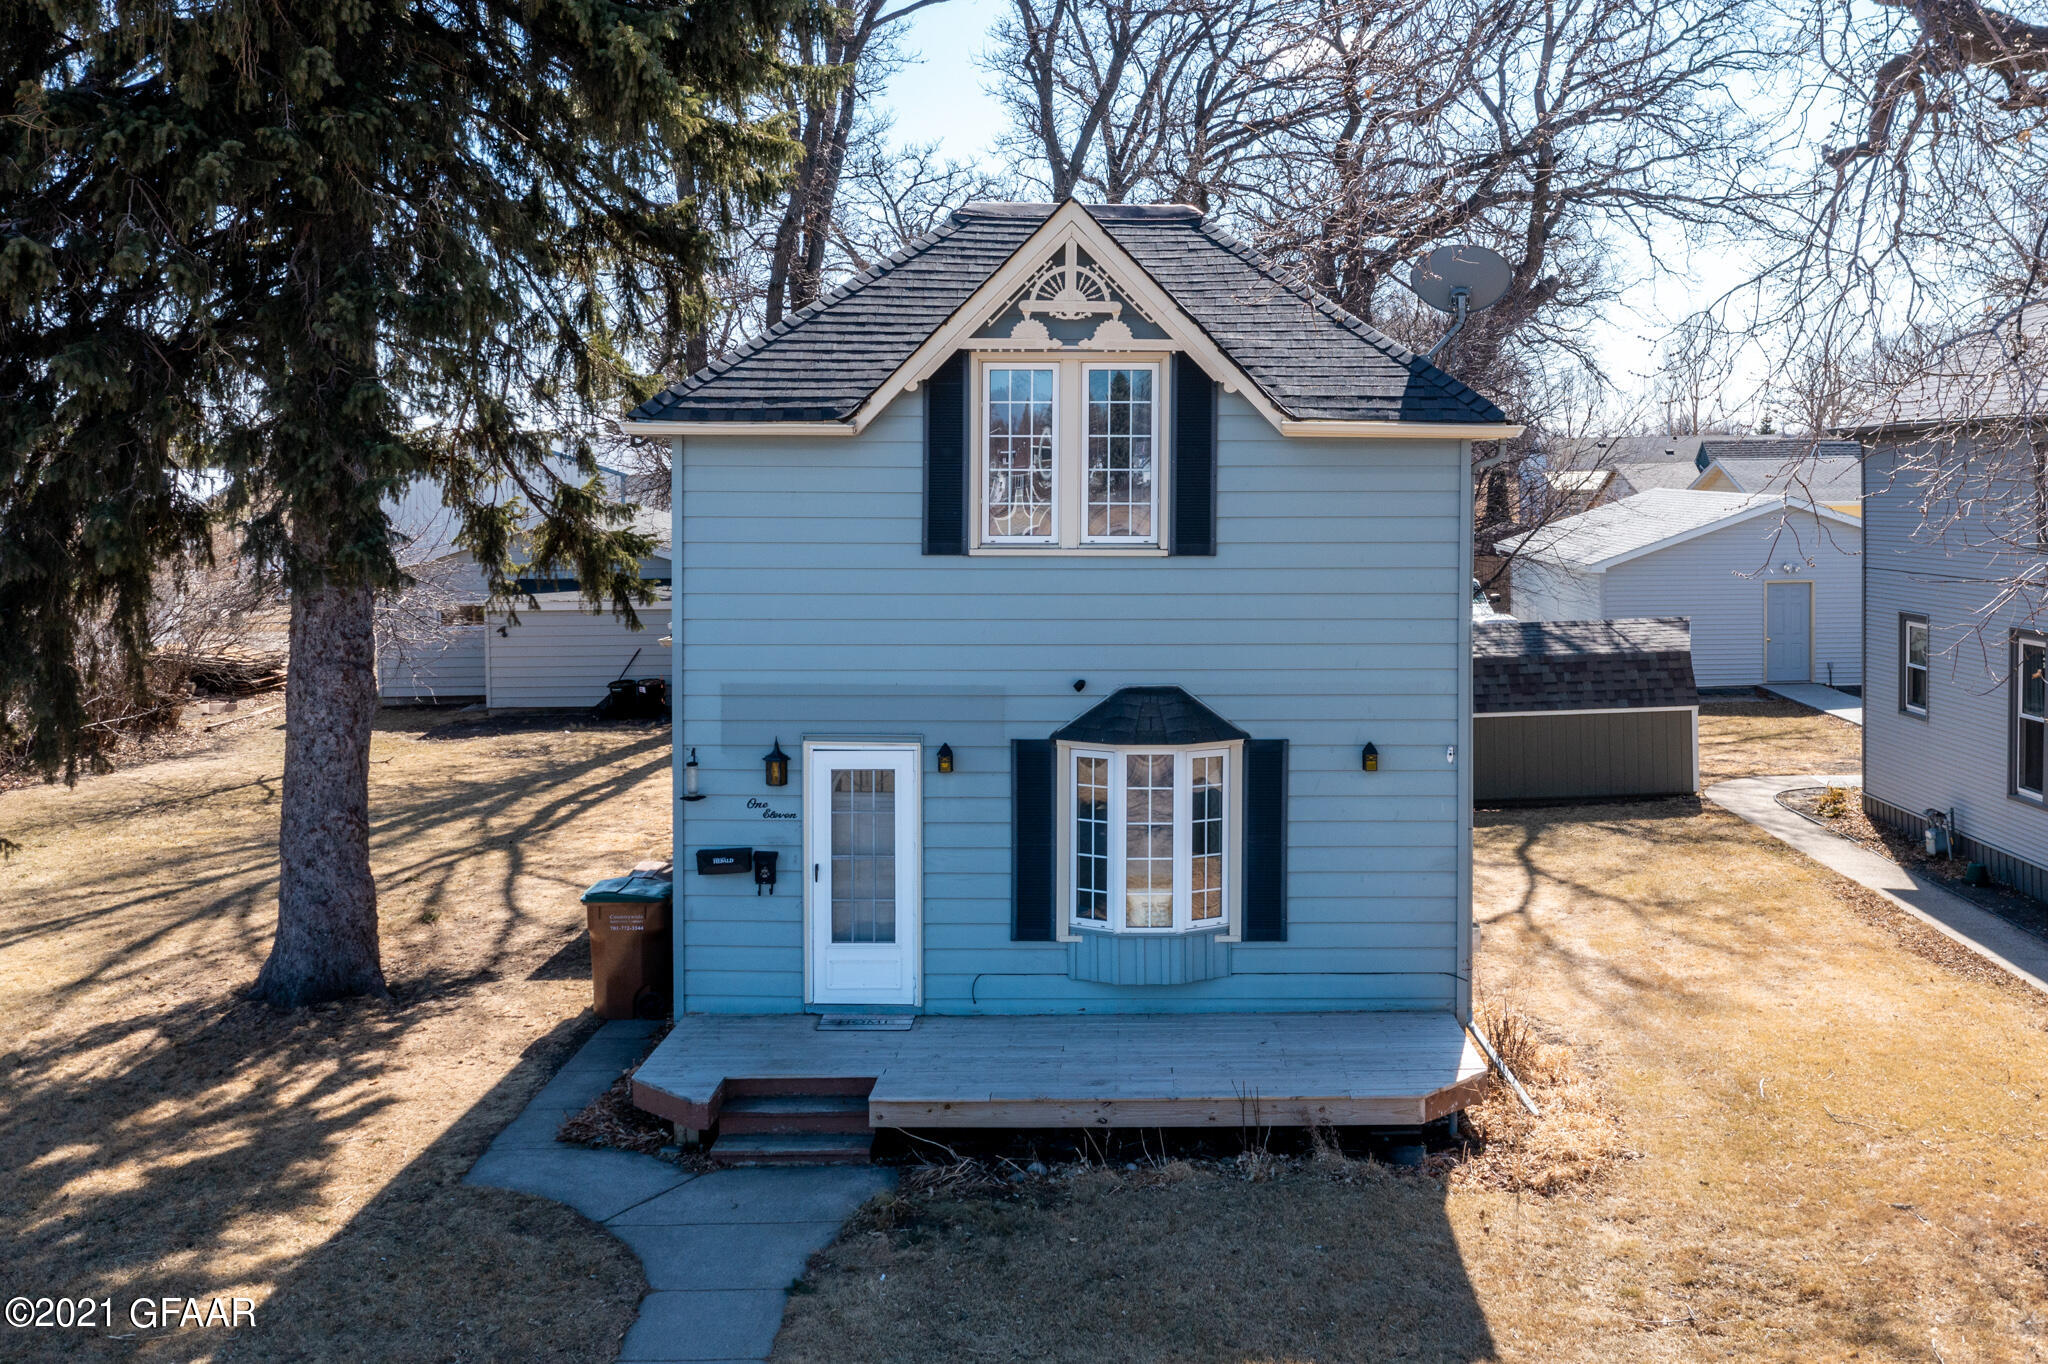 Great starter character home near downtown East Grand Forks. Home features include tall ceilings on main floor, fireplace, two stall garage and large side yard. Main floor has large eat-in kitchen, laundry, and office with french doors. 2nd floor has three bedrooms and beautiful updated bathroom with clawfoot bath tub.